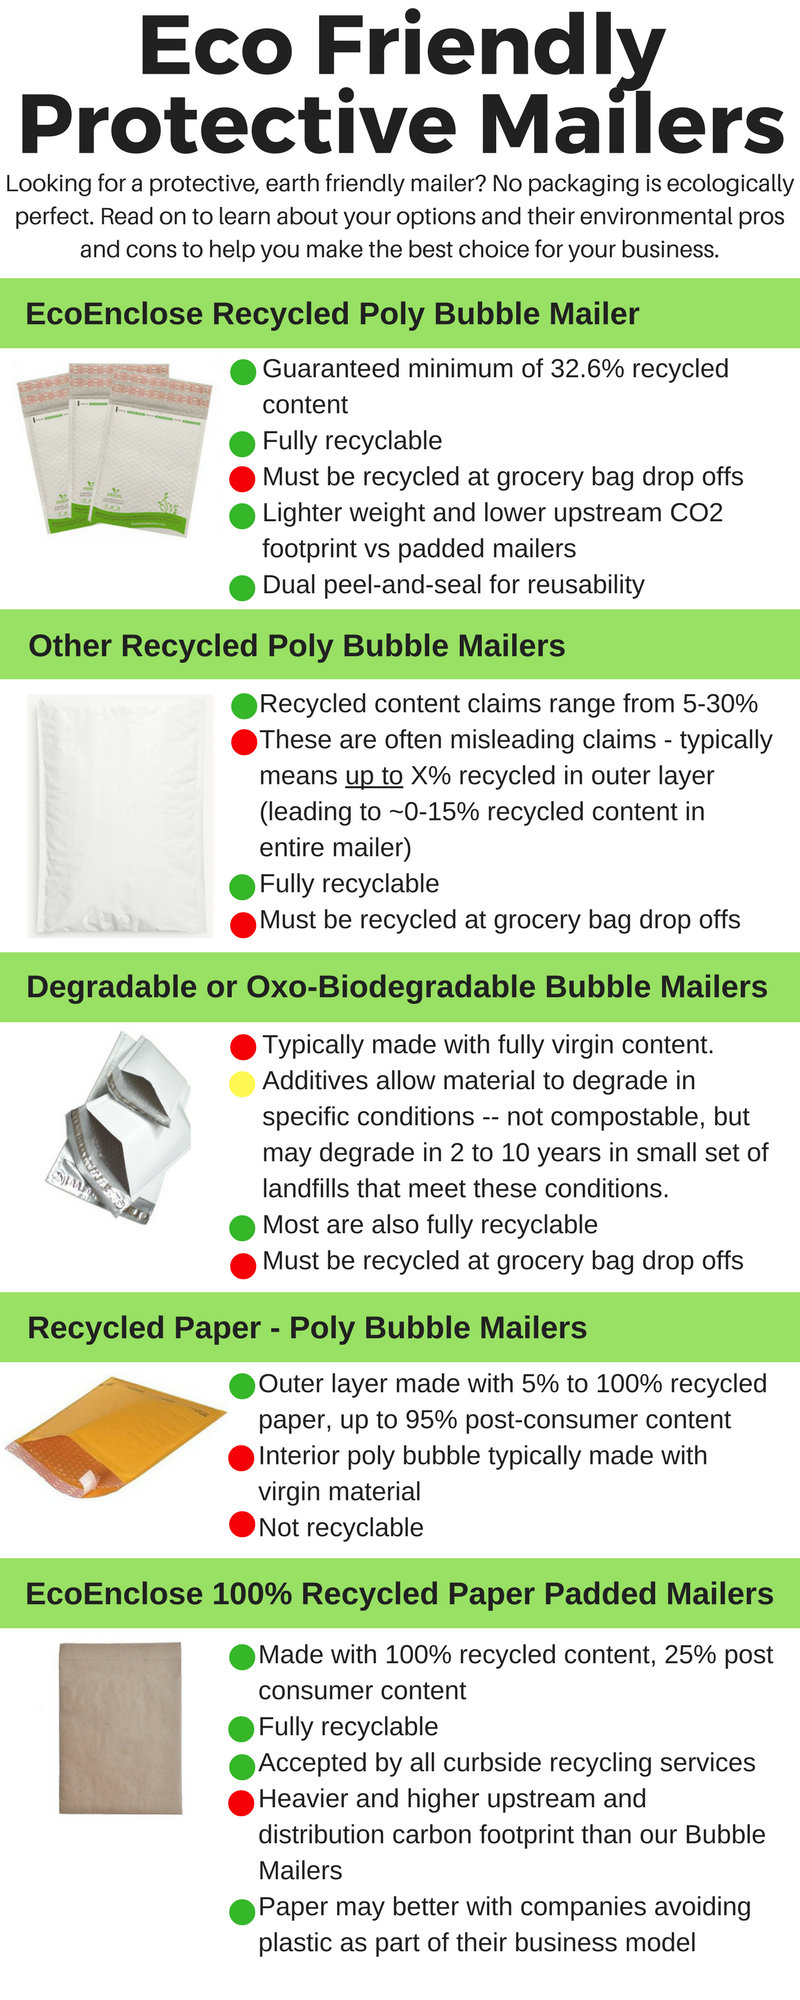 Ecoenclose Definitive Guide To Protective And Cushioned Mailers